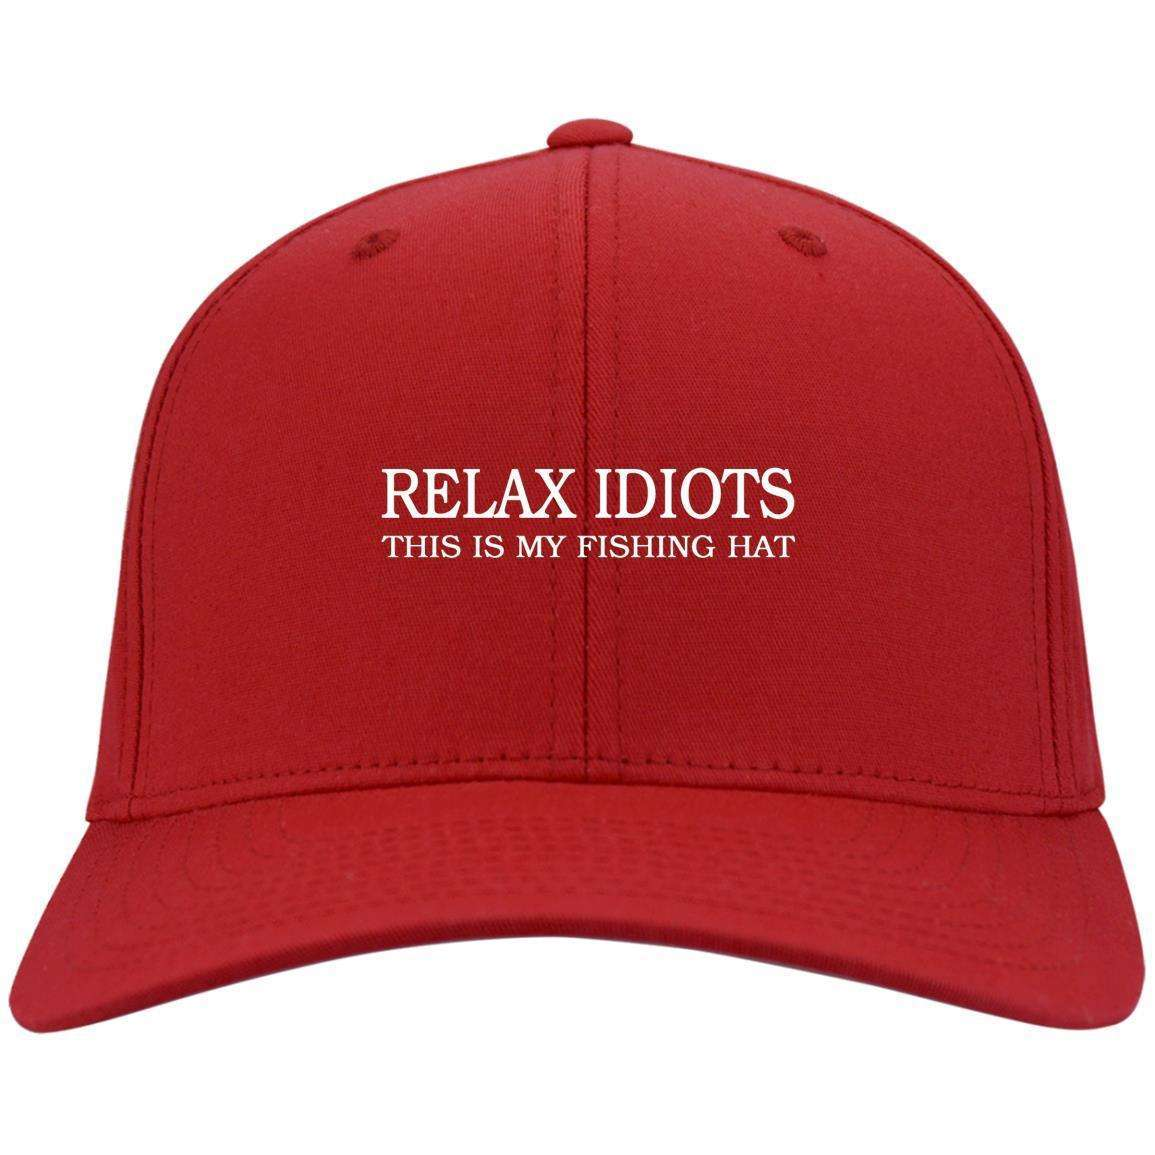 Relax Idiots This Is My Fishing Hat Original Dad Cap